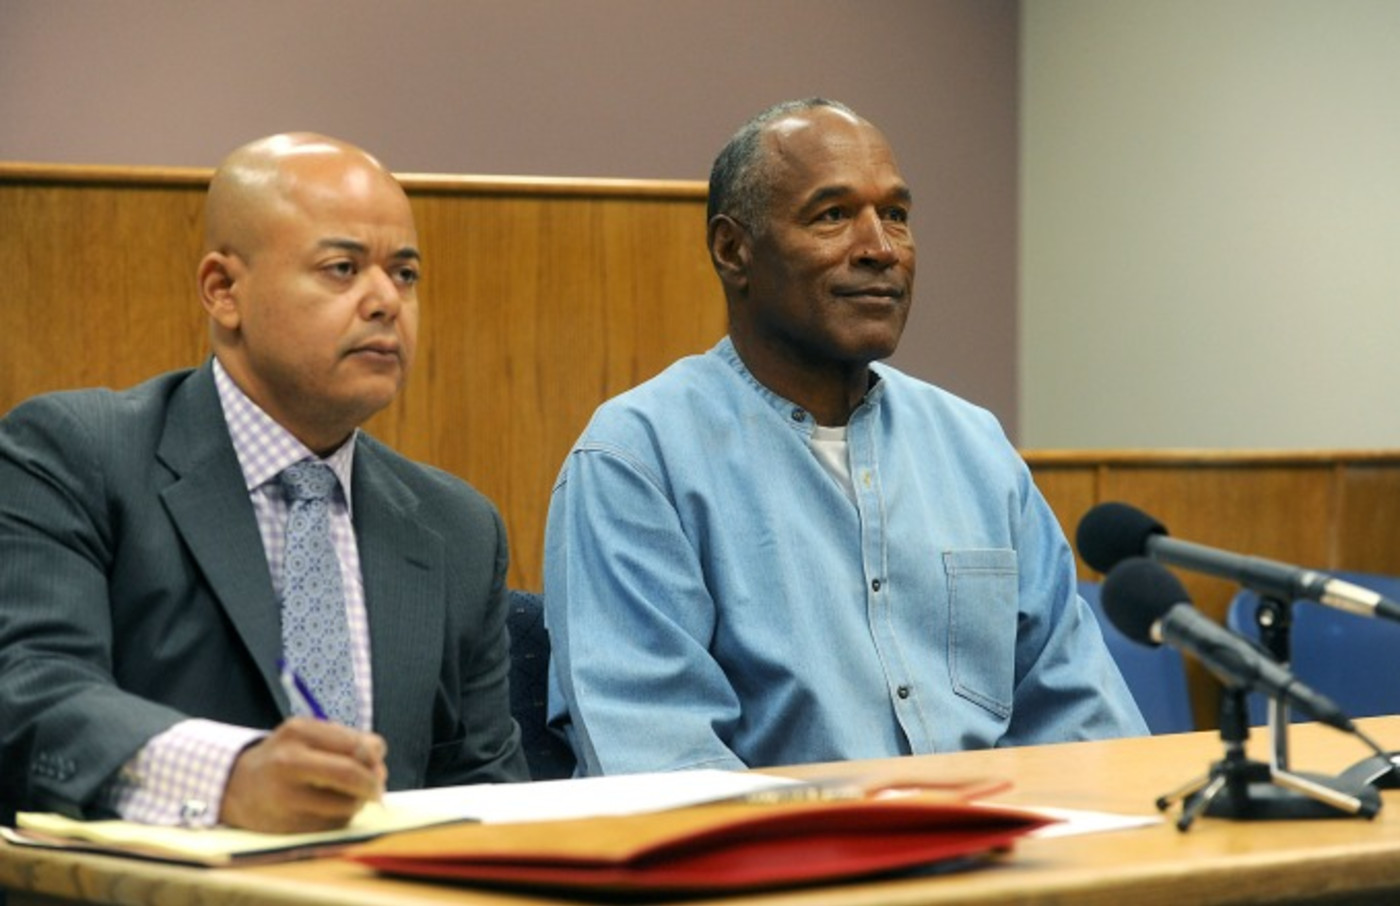 70-Year-Old O.J. Simpson Will Be Released From Prison